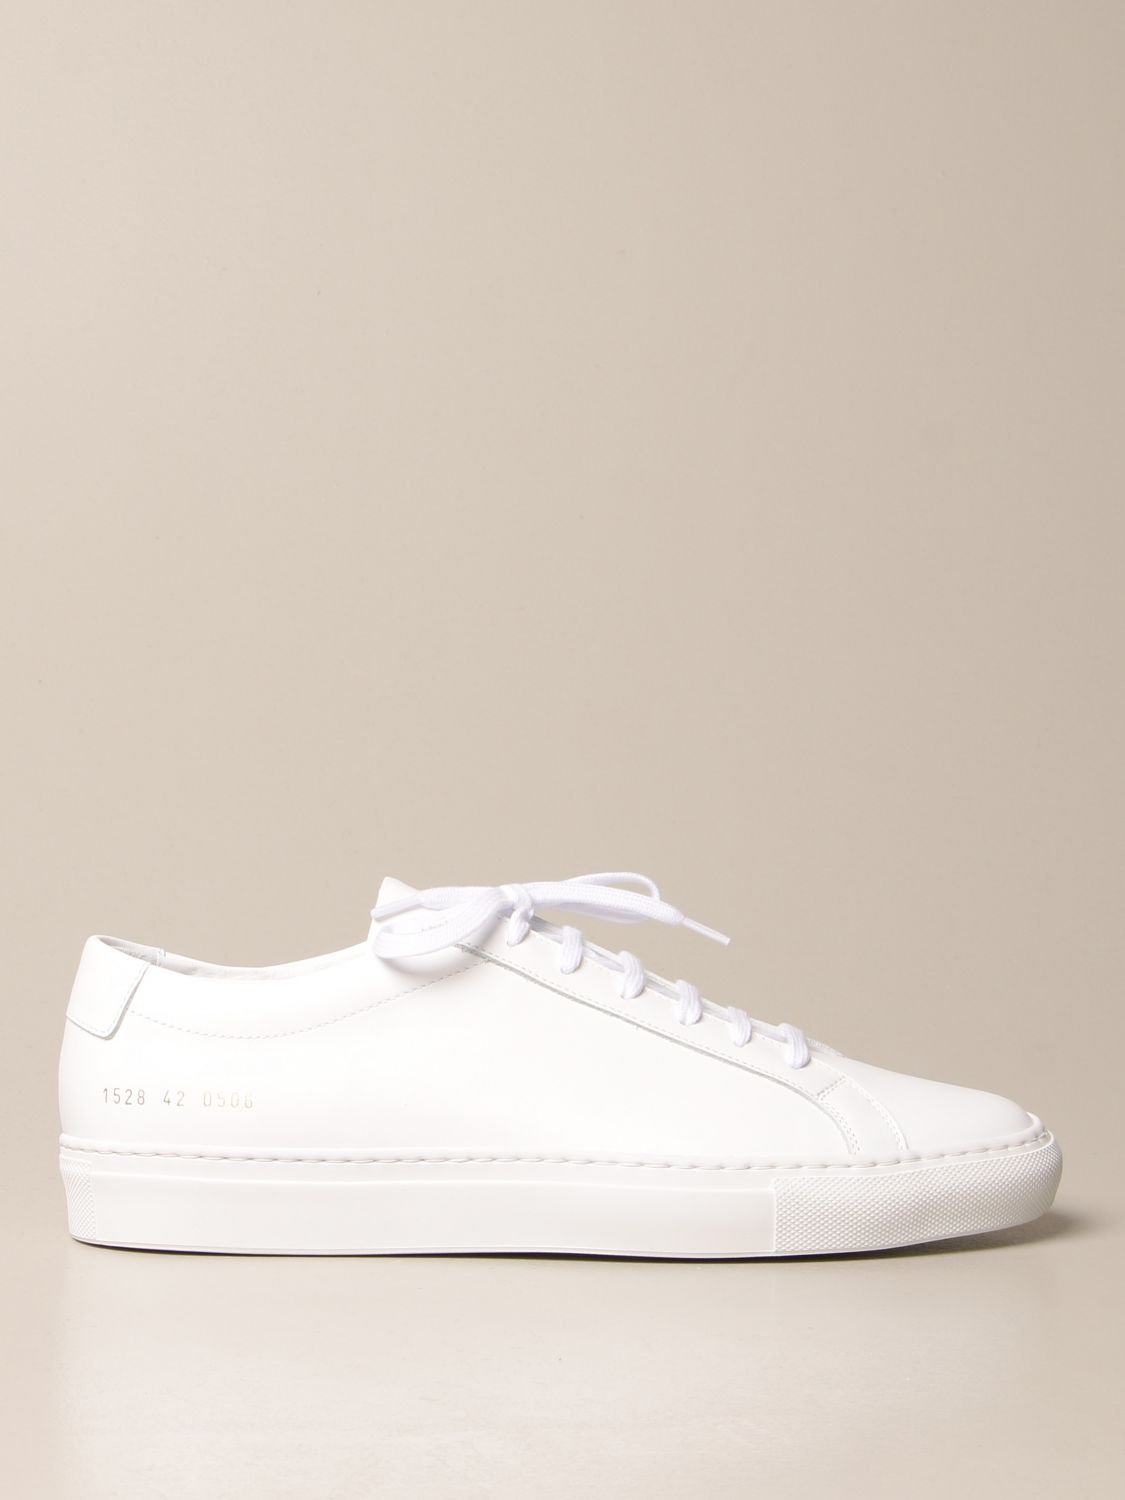 Sneakers Common Projects: Sneakers herren Common Projects weiß 1